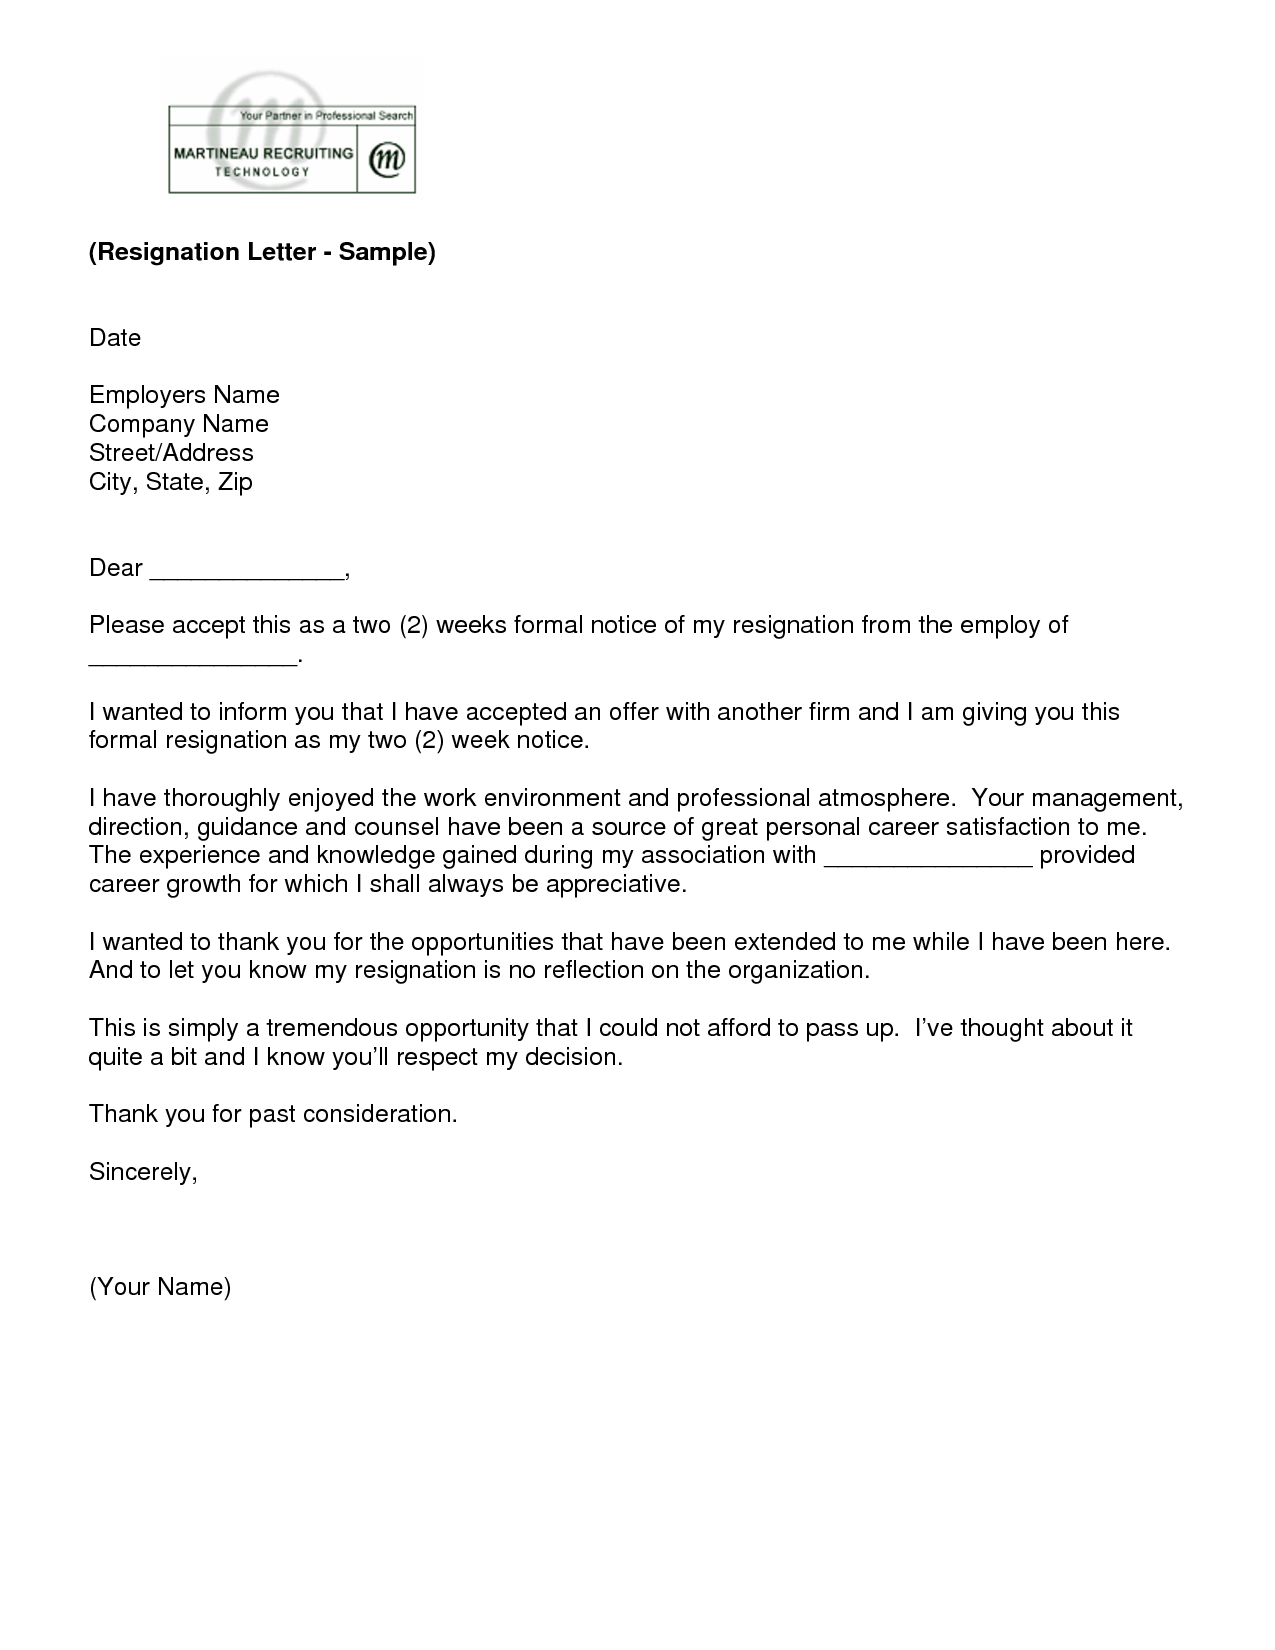 Letter of resignation 2 weeks notice template ew adulthood letter of resignation 2 weeks notice template expocarfo